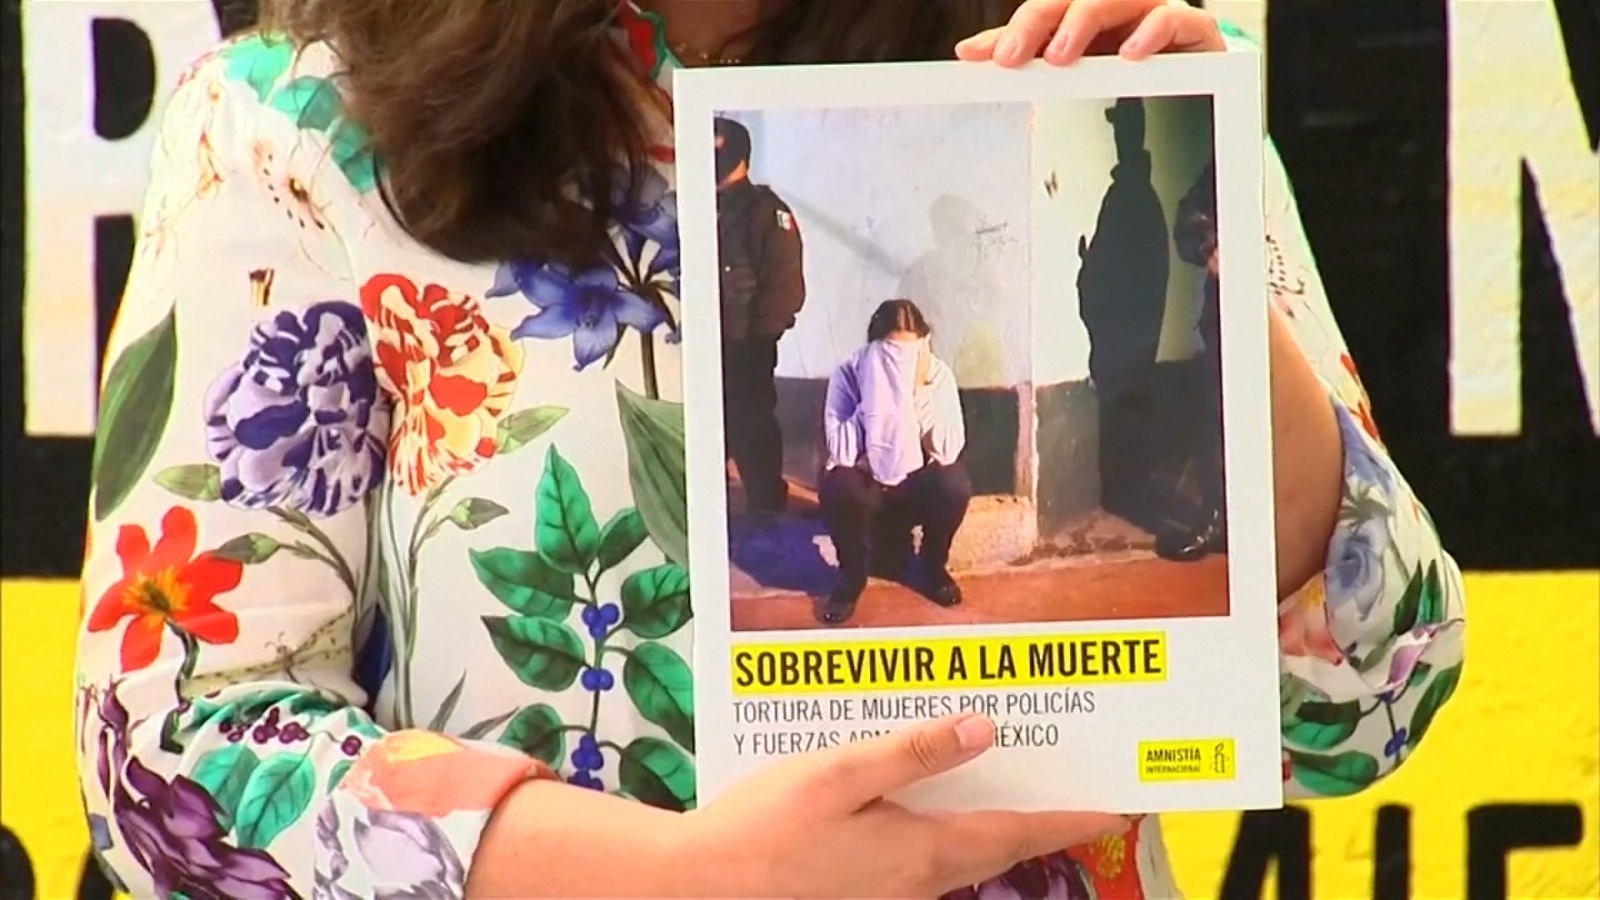 Mexico: Women subjected to shocking sexual abuse says Amnesty International